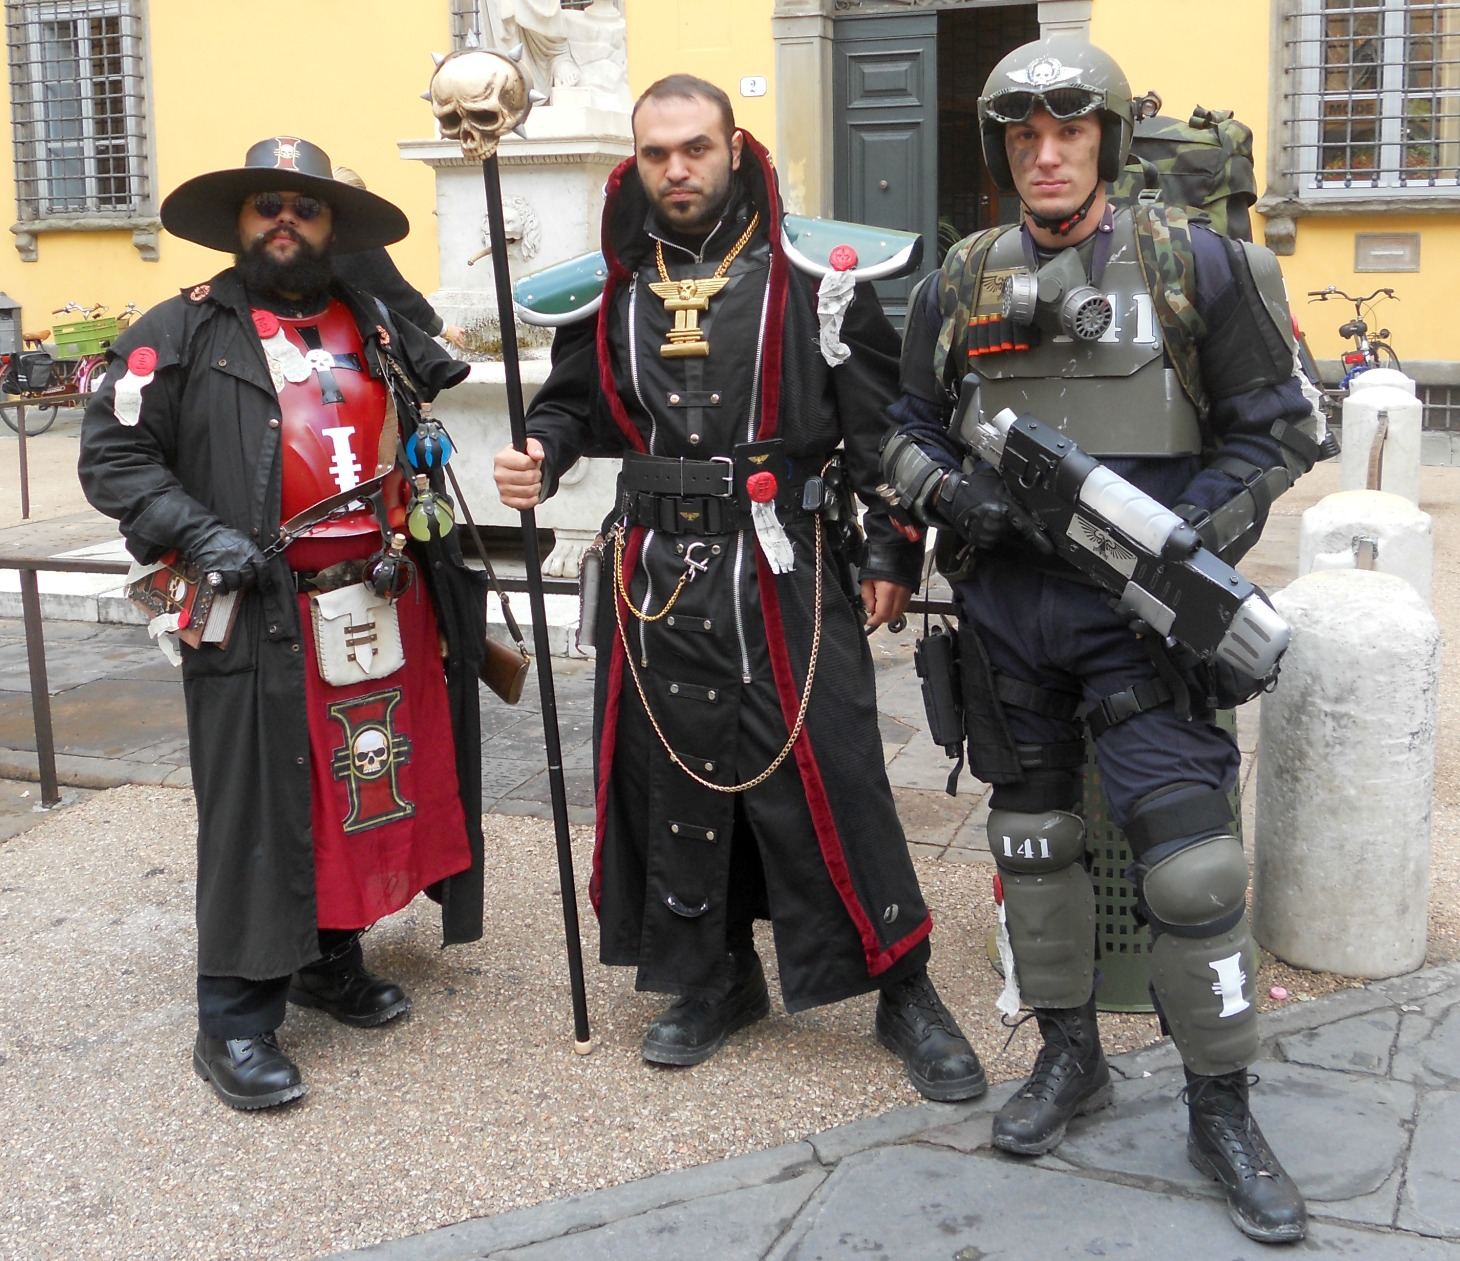 Flood Imperium-warhammer-40000-%D1%84%D1%8D%D0%BD%D0%B4%D0%BE%D0%BC%D1%8B-cosplay-1039794